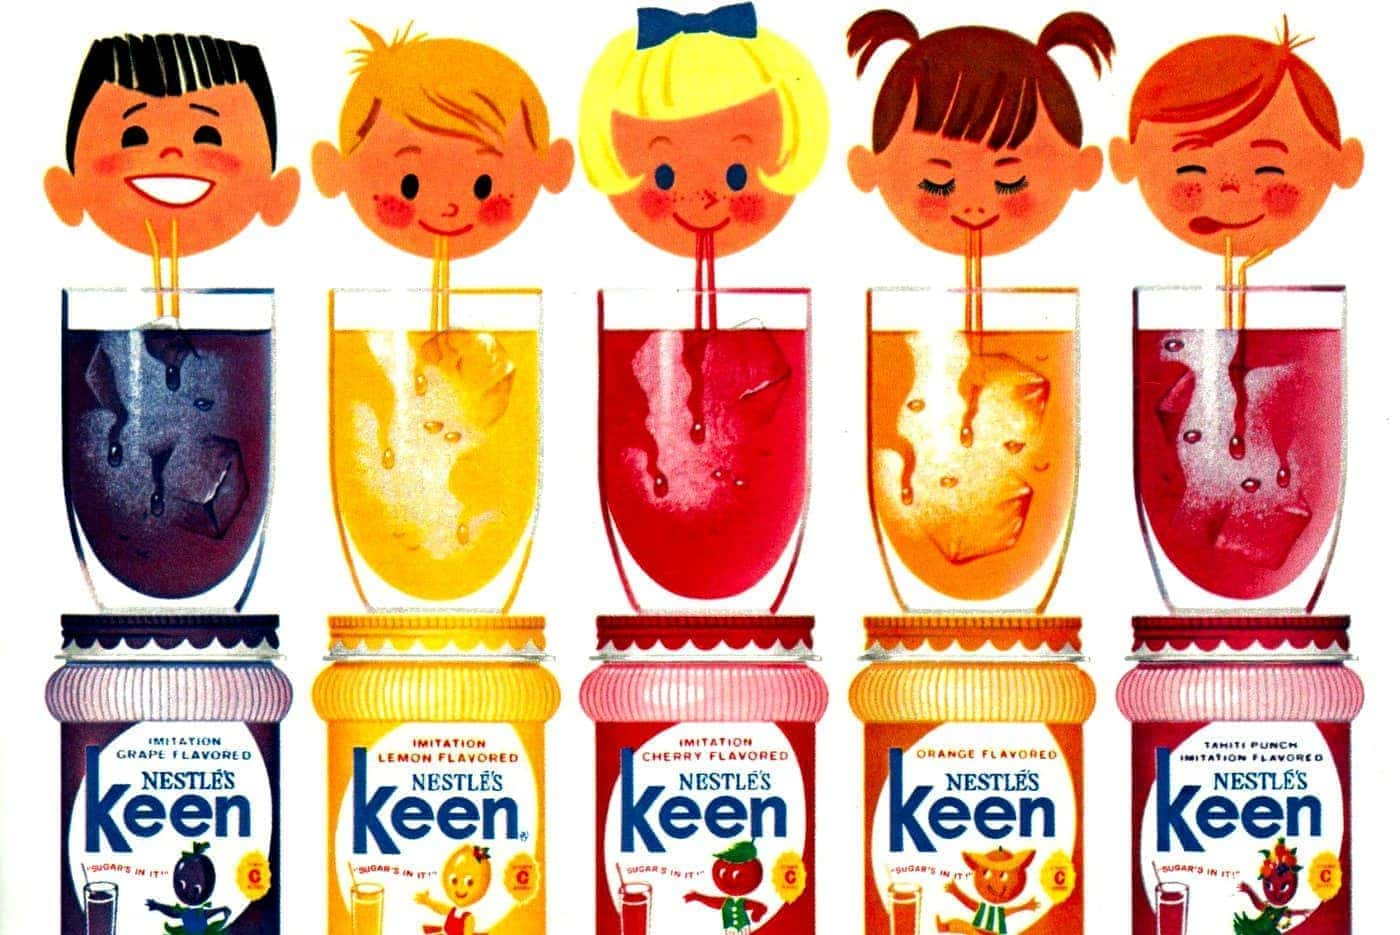 Keen fruit-flavored soft drink mixes for kids from the '60s